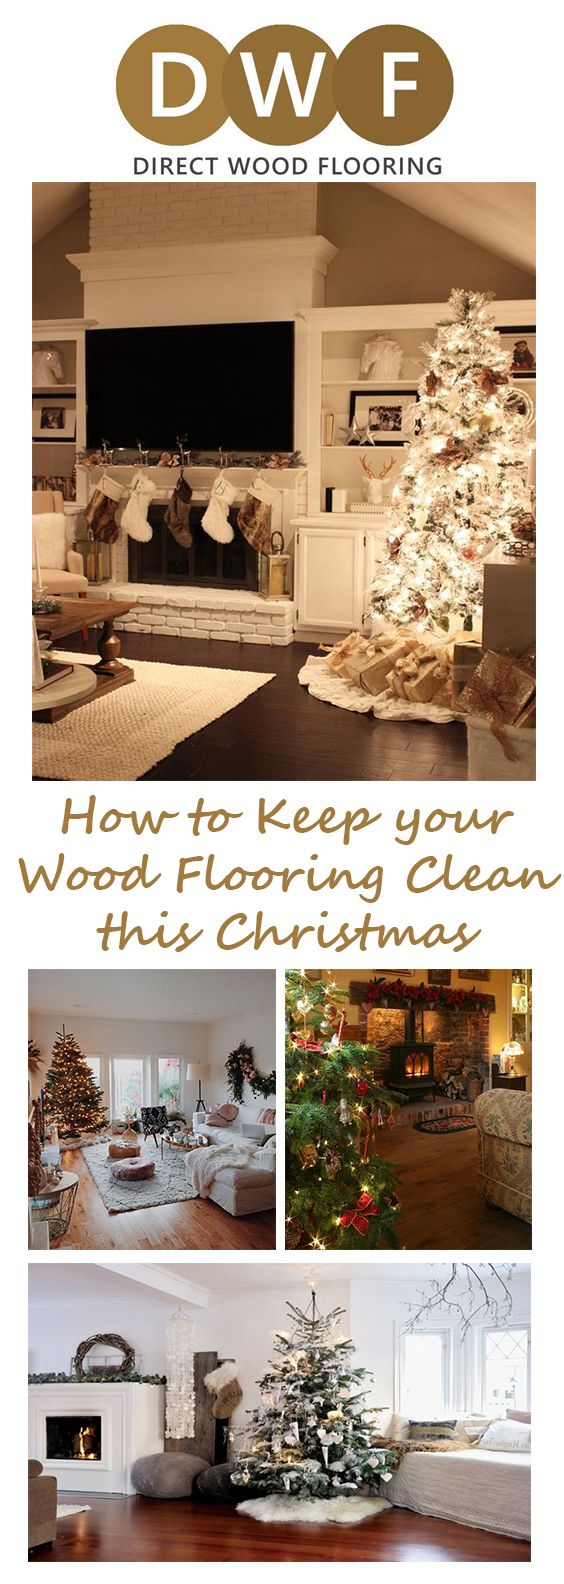 ... The Easiest #flooring Types To Maintain However When It Comes To  #Christmas #cleaning We Have A Whole New Ball Game On Our Hands. Tree  Pines, Fake Snow ...